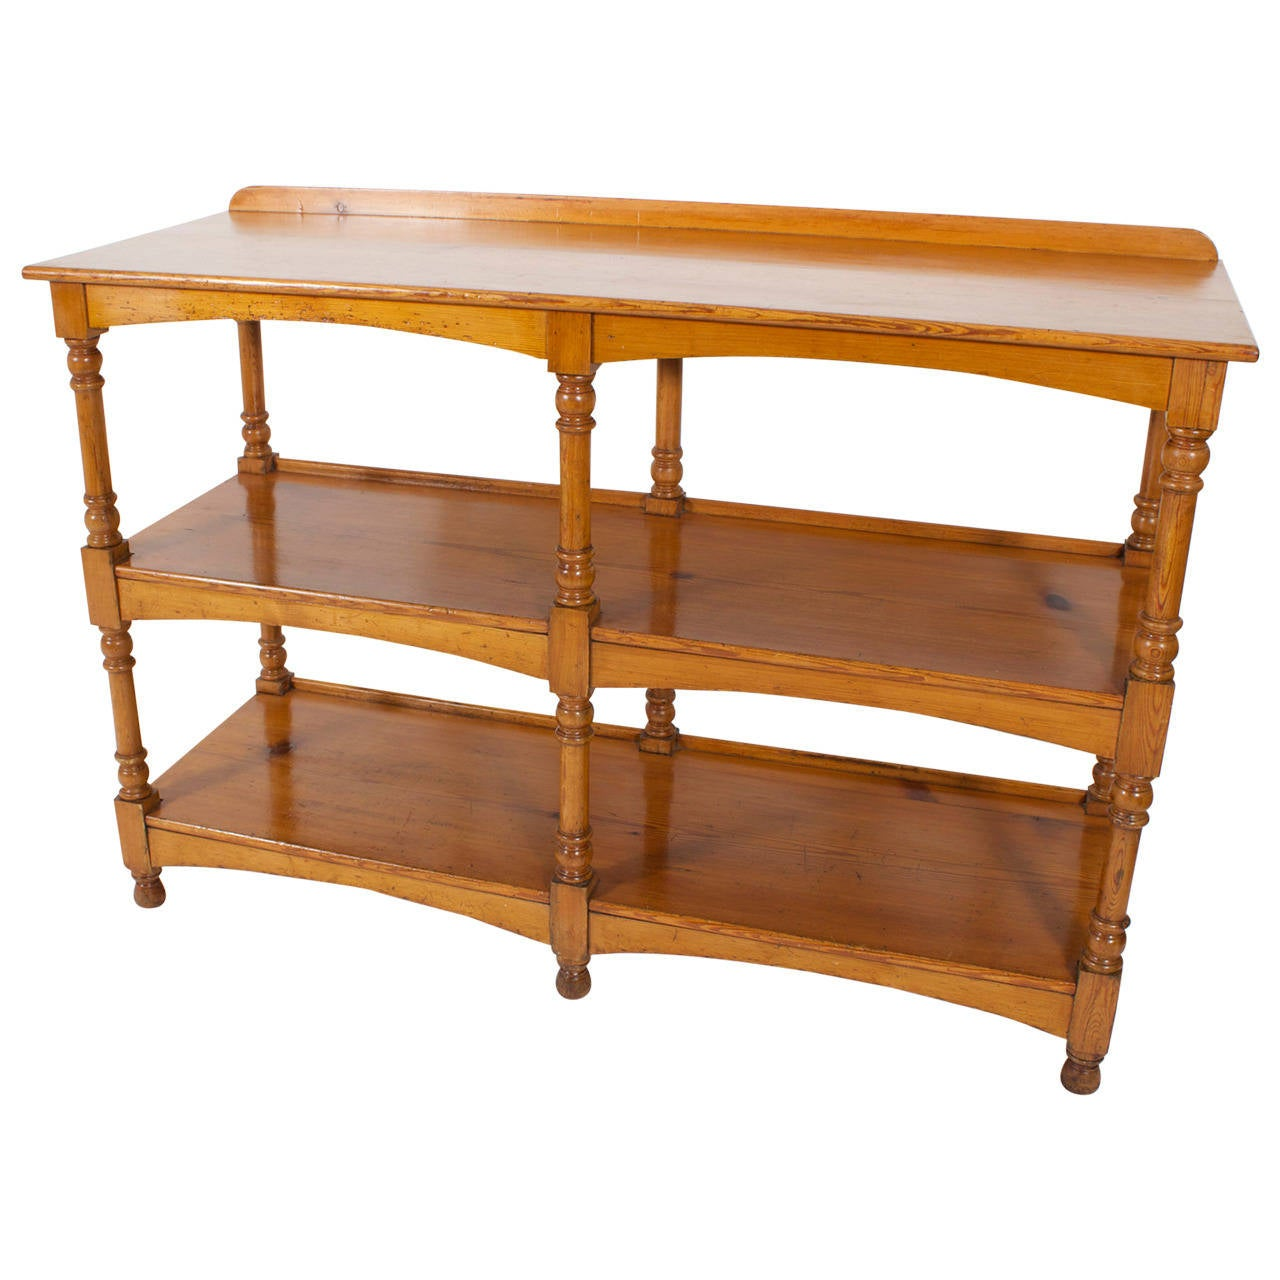 19th C. 3 Tiered English Pine Server or Set of Shelves